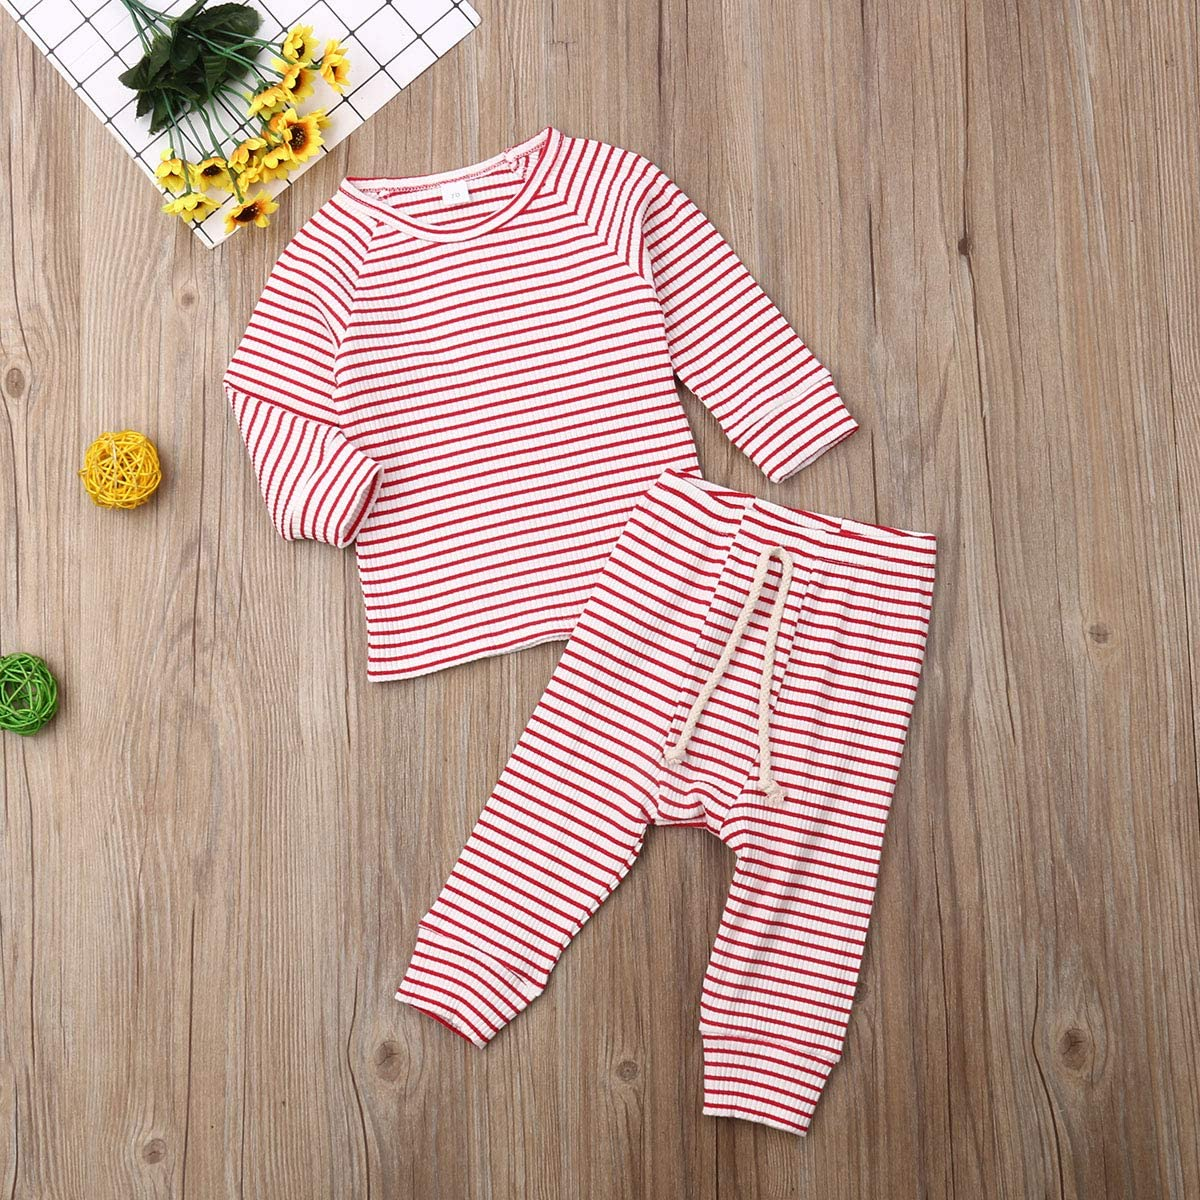 ITFABS Cute Baby Boys Girls Pajamas Set Organic Cotton Solid Pjs Sleepwear Toddler Baby Long Sleeve Sleeper Home Wear